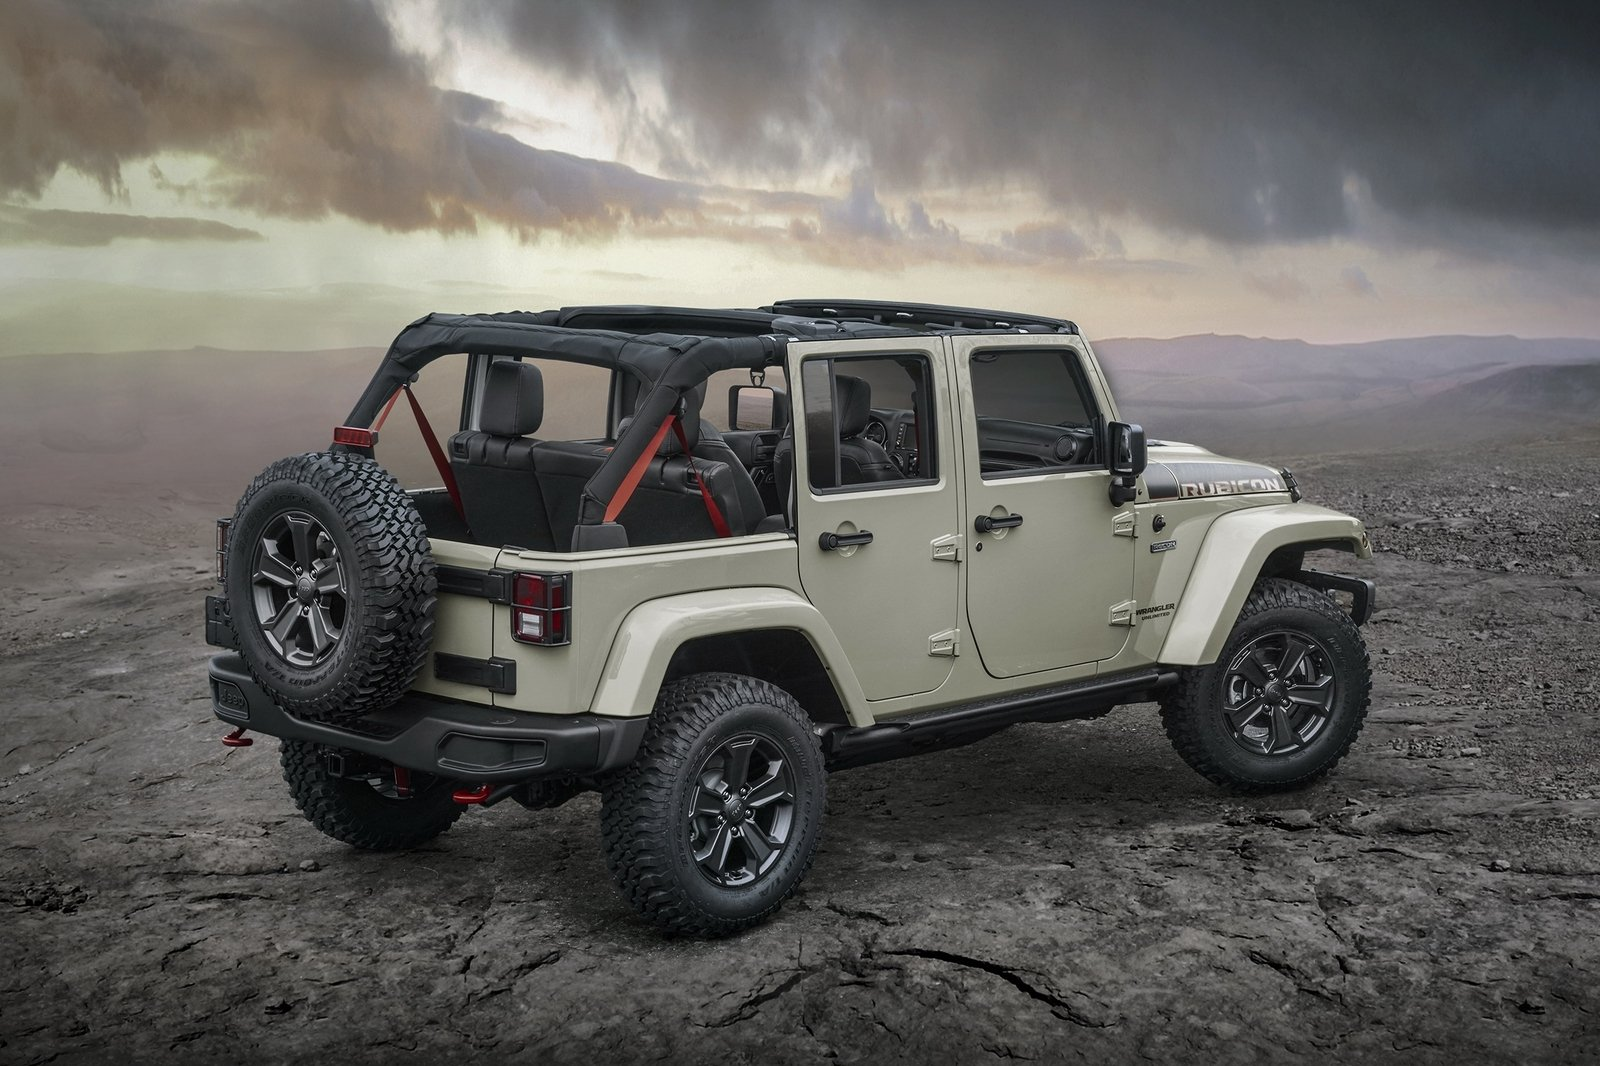 2017 jeep wrangler rubicon recon picture 704794 truck review top speed. Black Bedroom Furniture Sets. Home Design Ideas